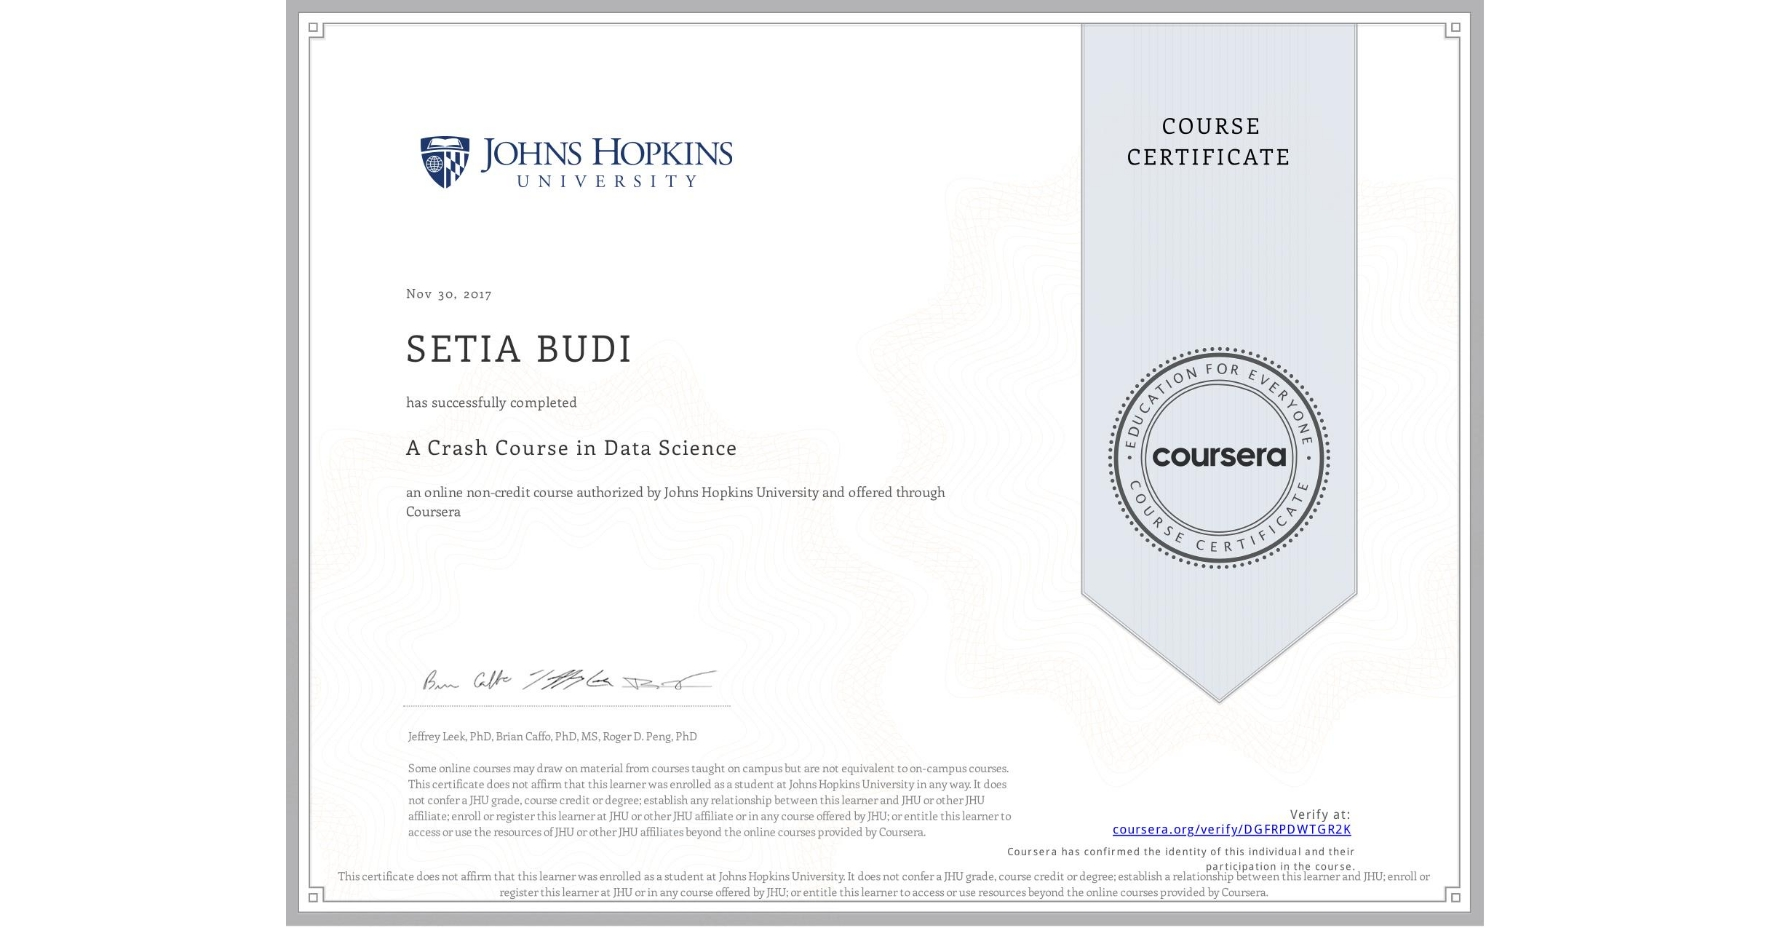 View certificate for Setia Budi, A Crash Course in Data Science, an online non-credit course authorized by Johns Hopkins University and offered through Coursera